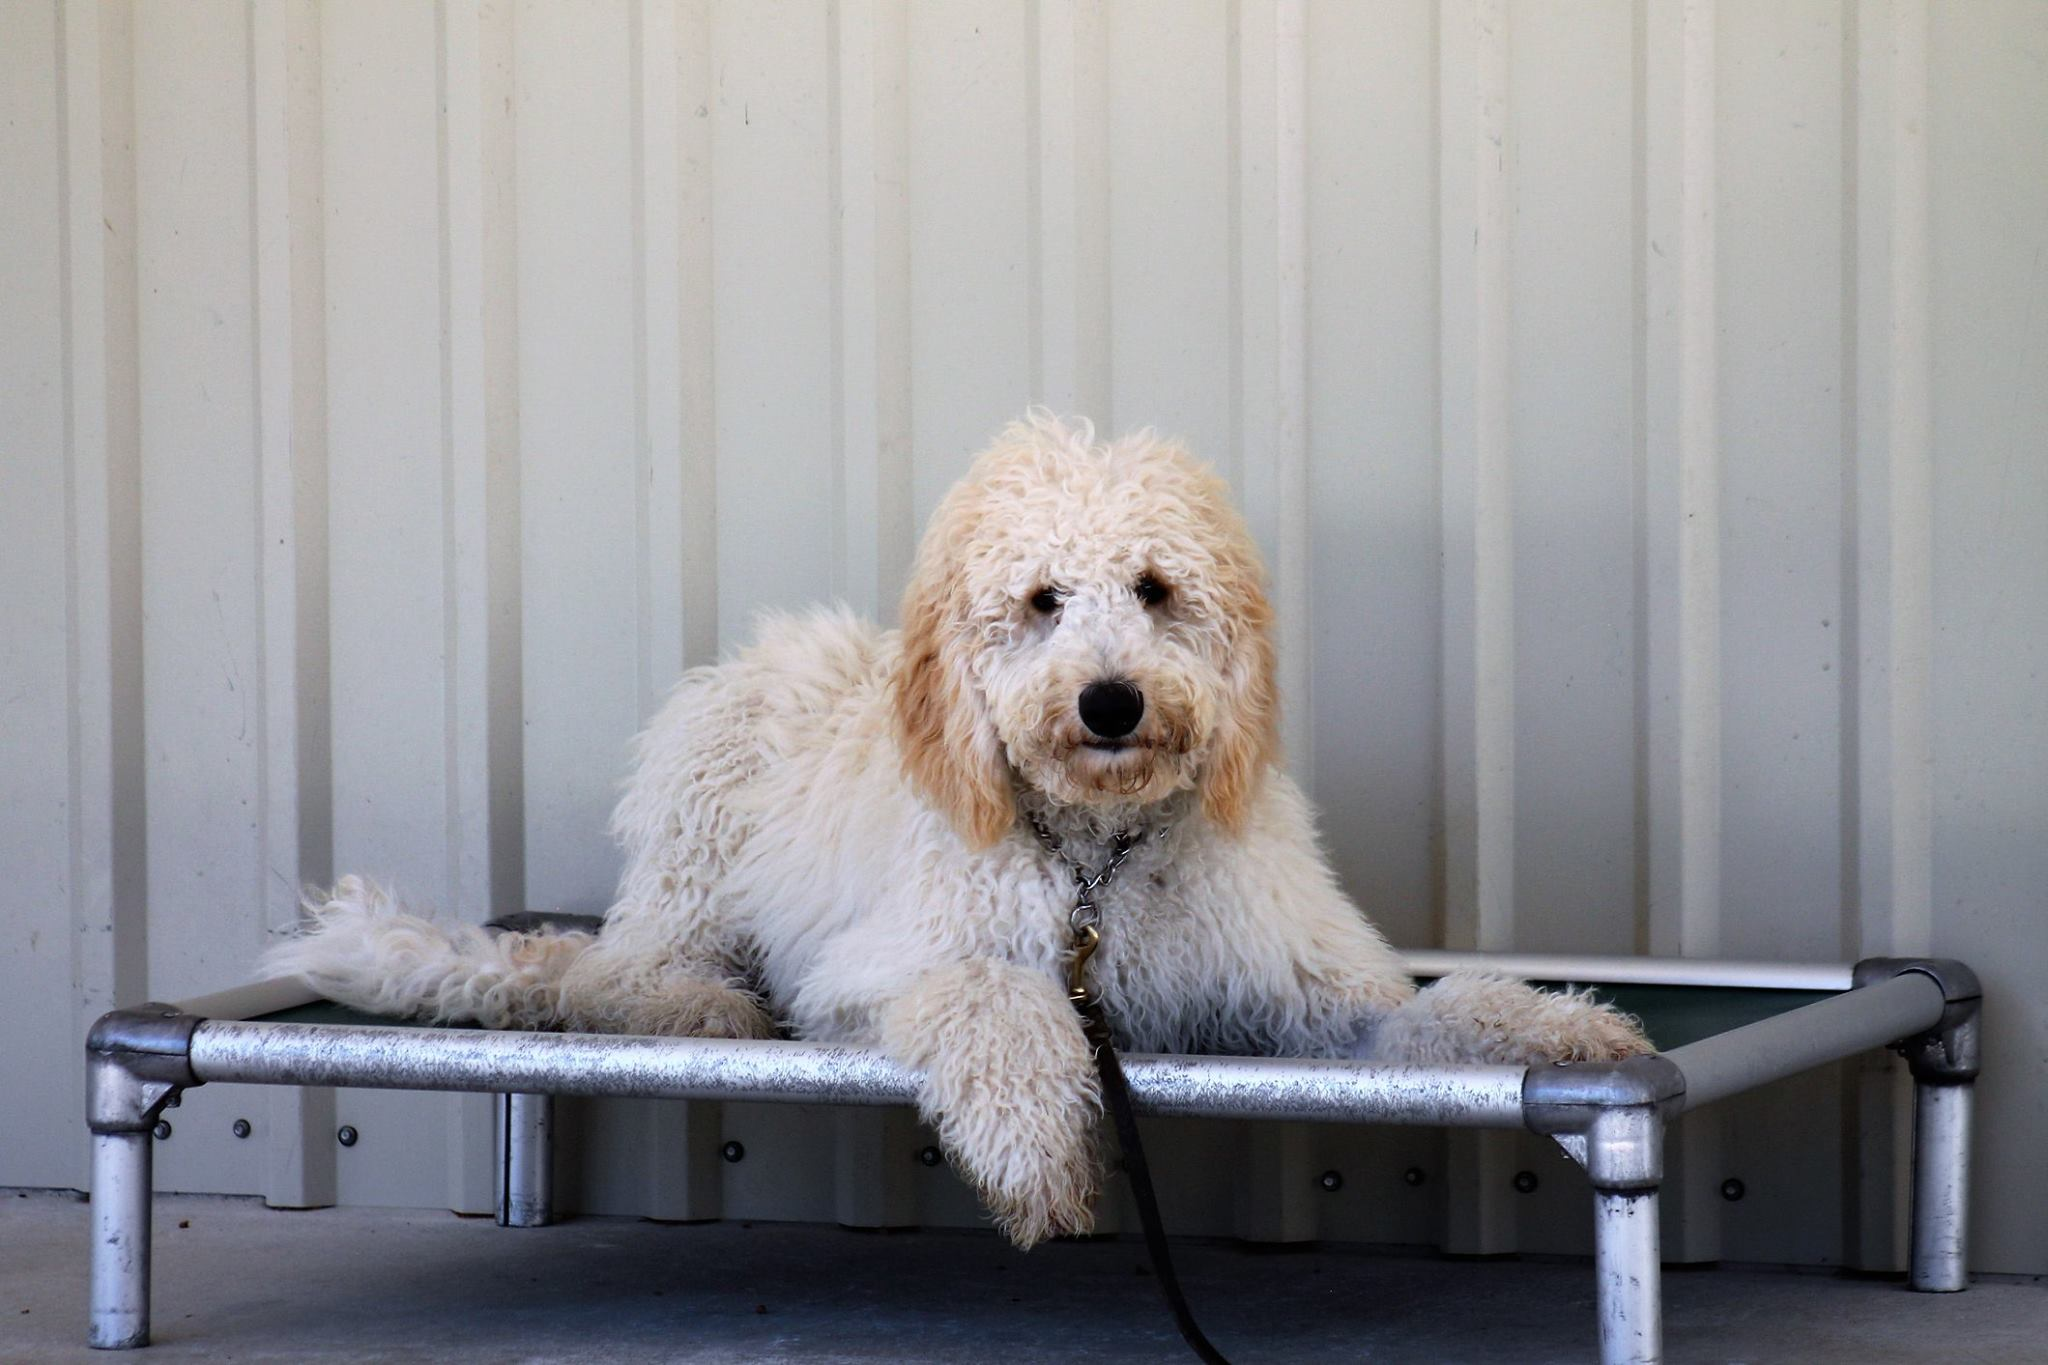 The best Houston dog grooming